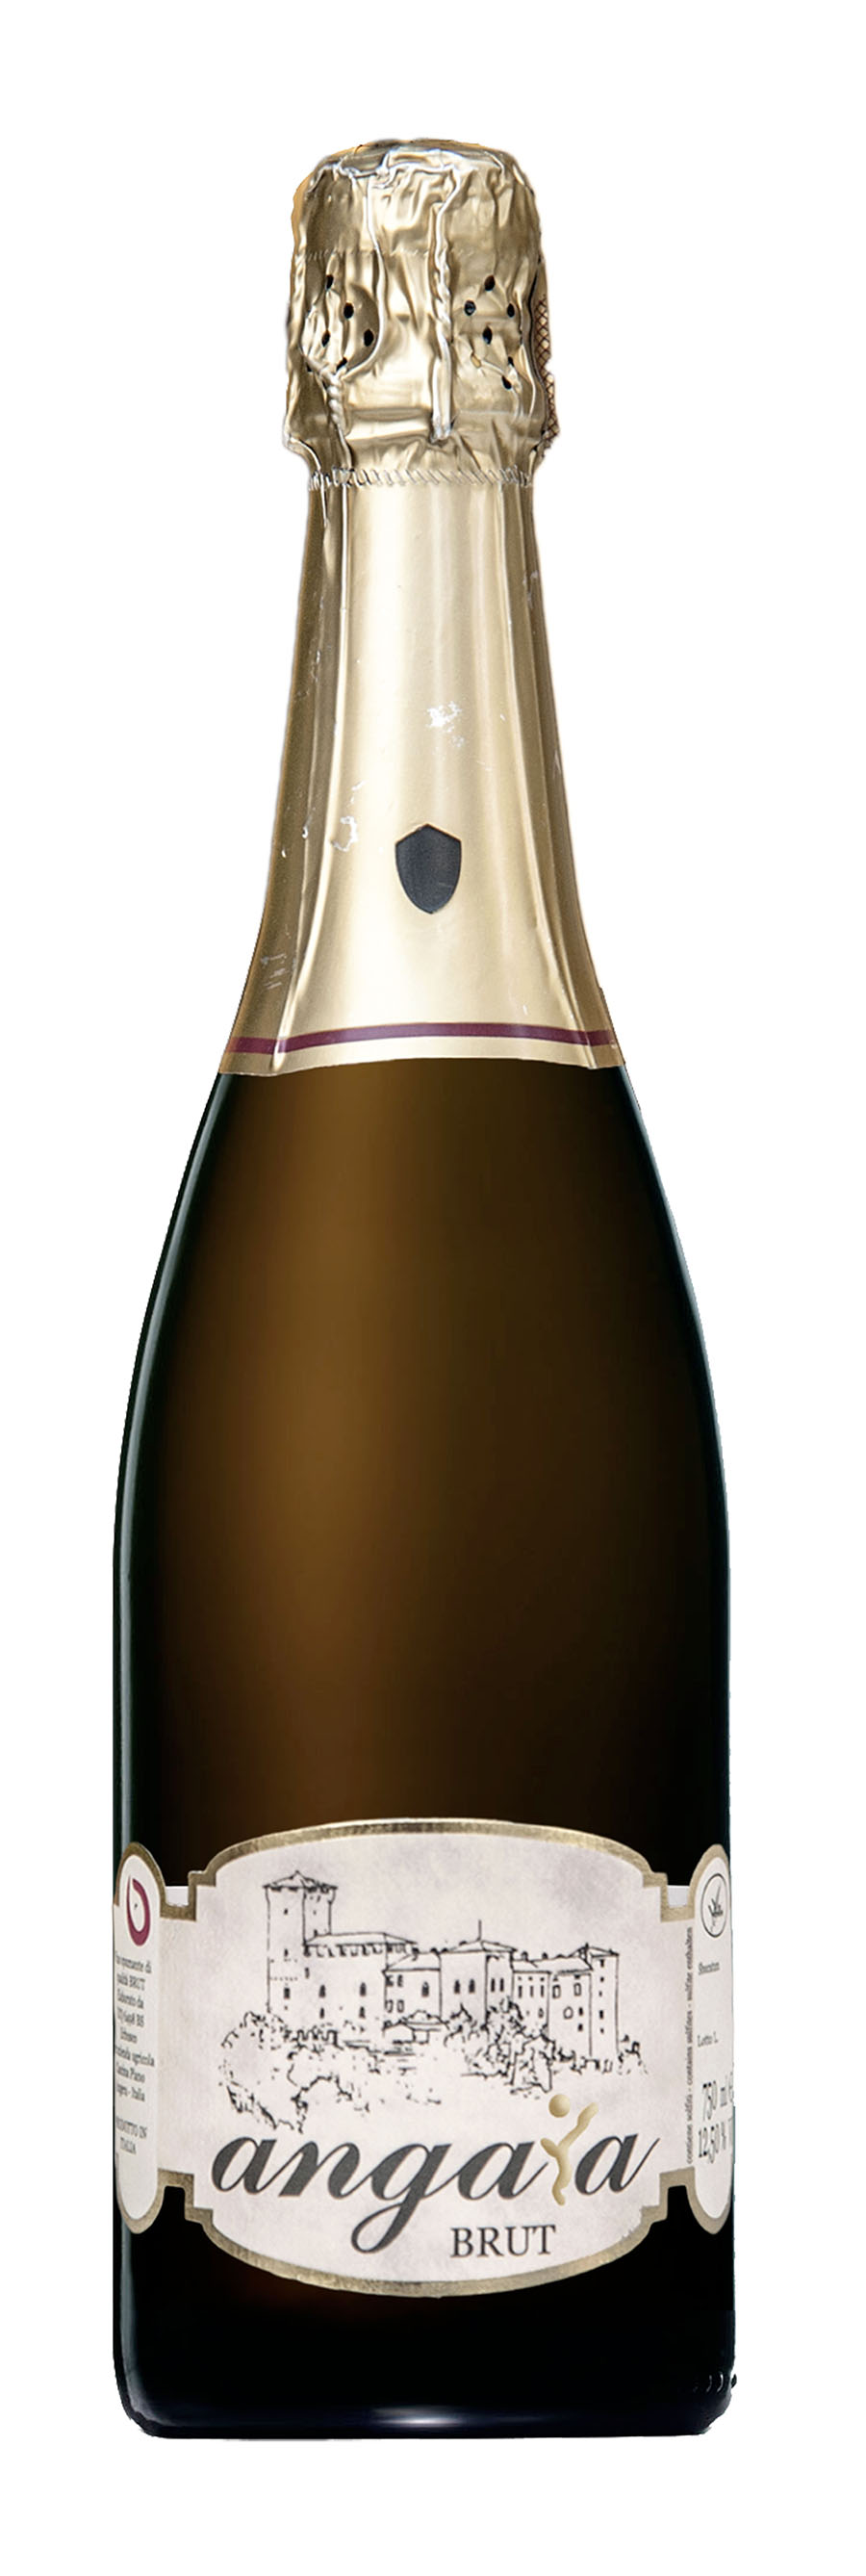 Angaya, our sparkling wine